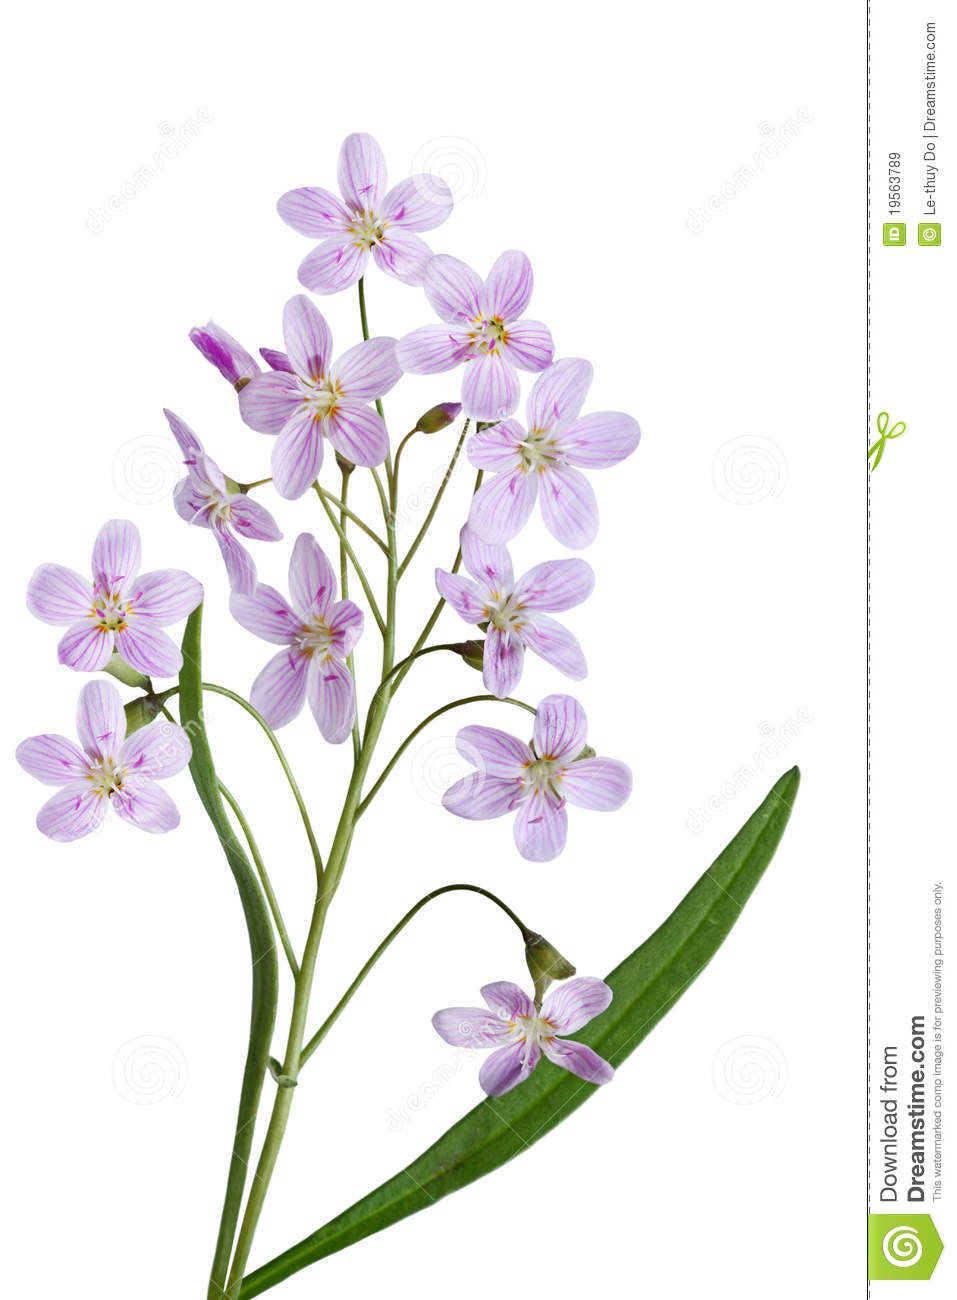 Cuckoo Flower Royalty Free Stock Images.